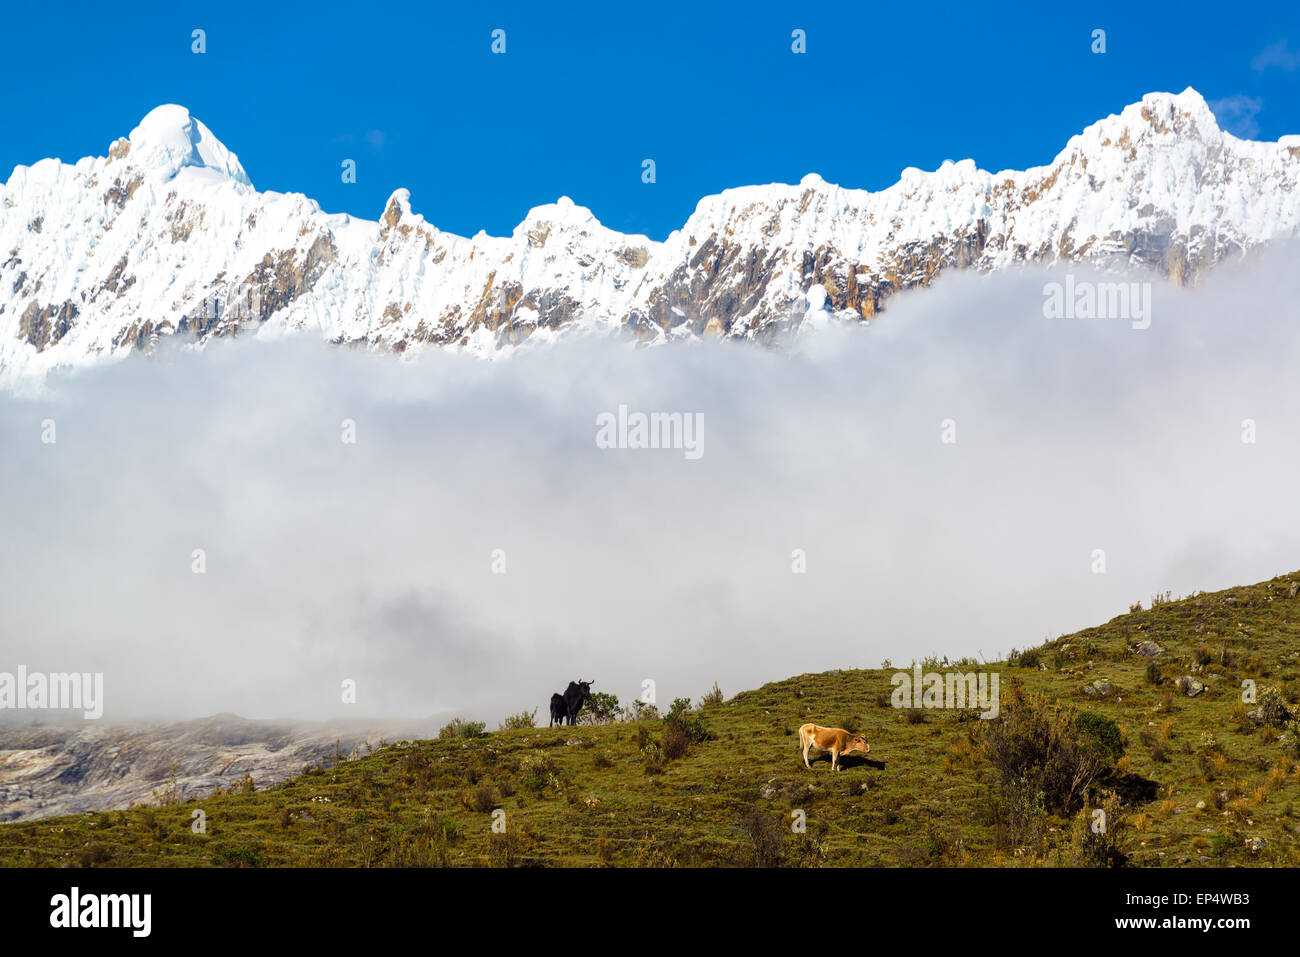 Two cows on a ridge with snow capped Andes mountains in the background near Huaraz, Peru - Stock Image